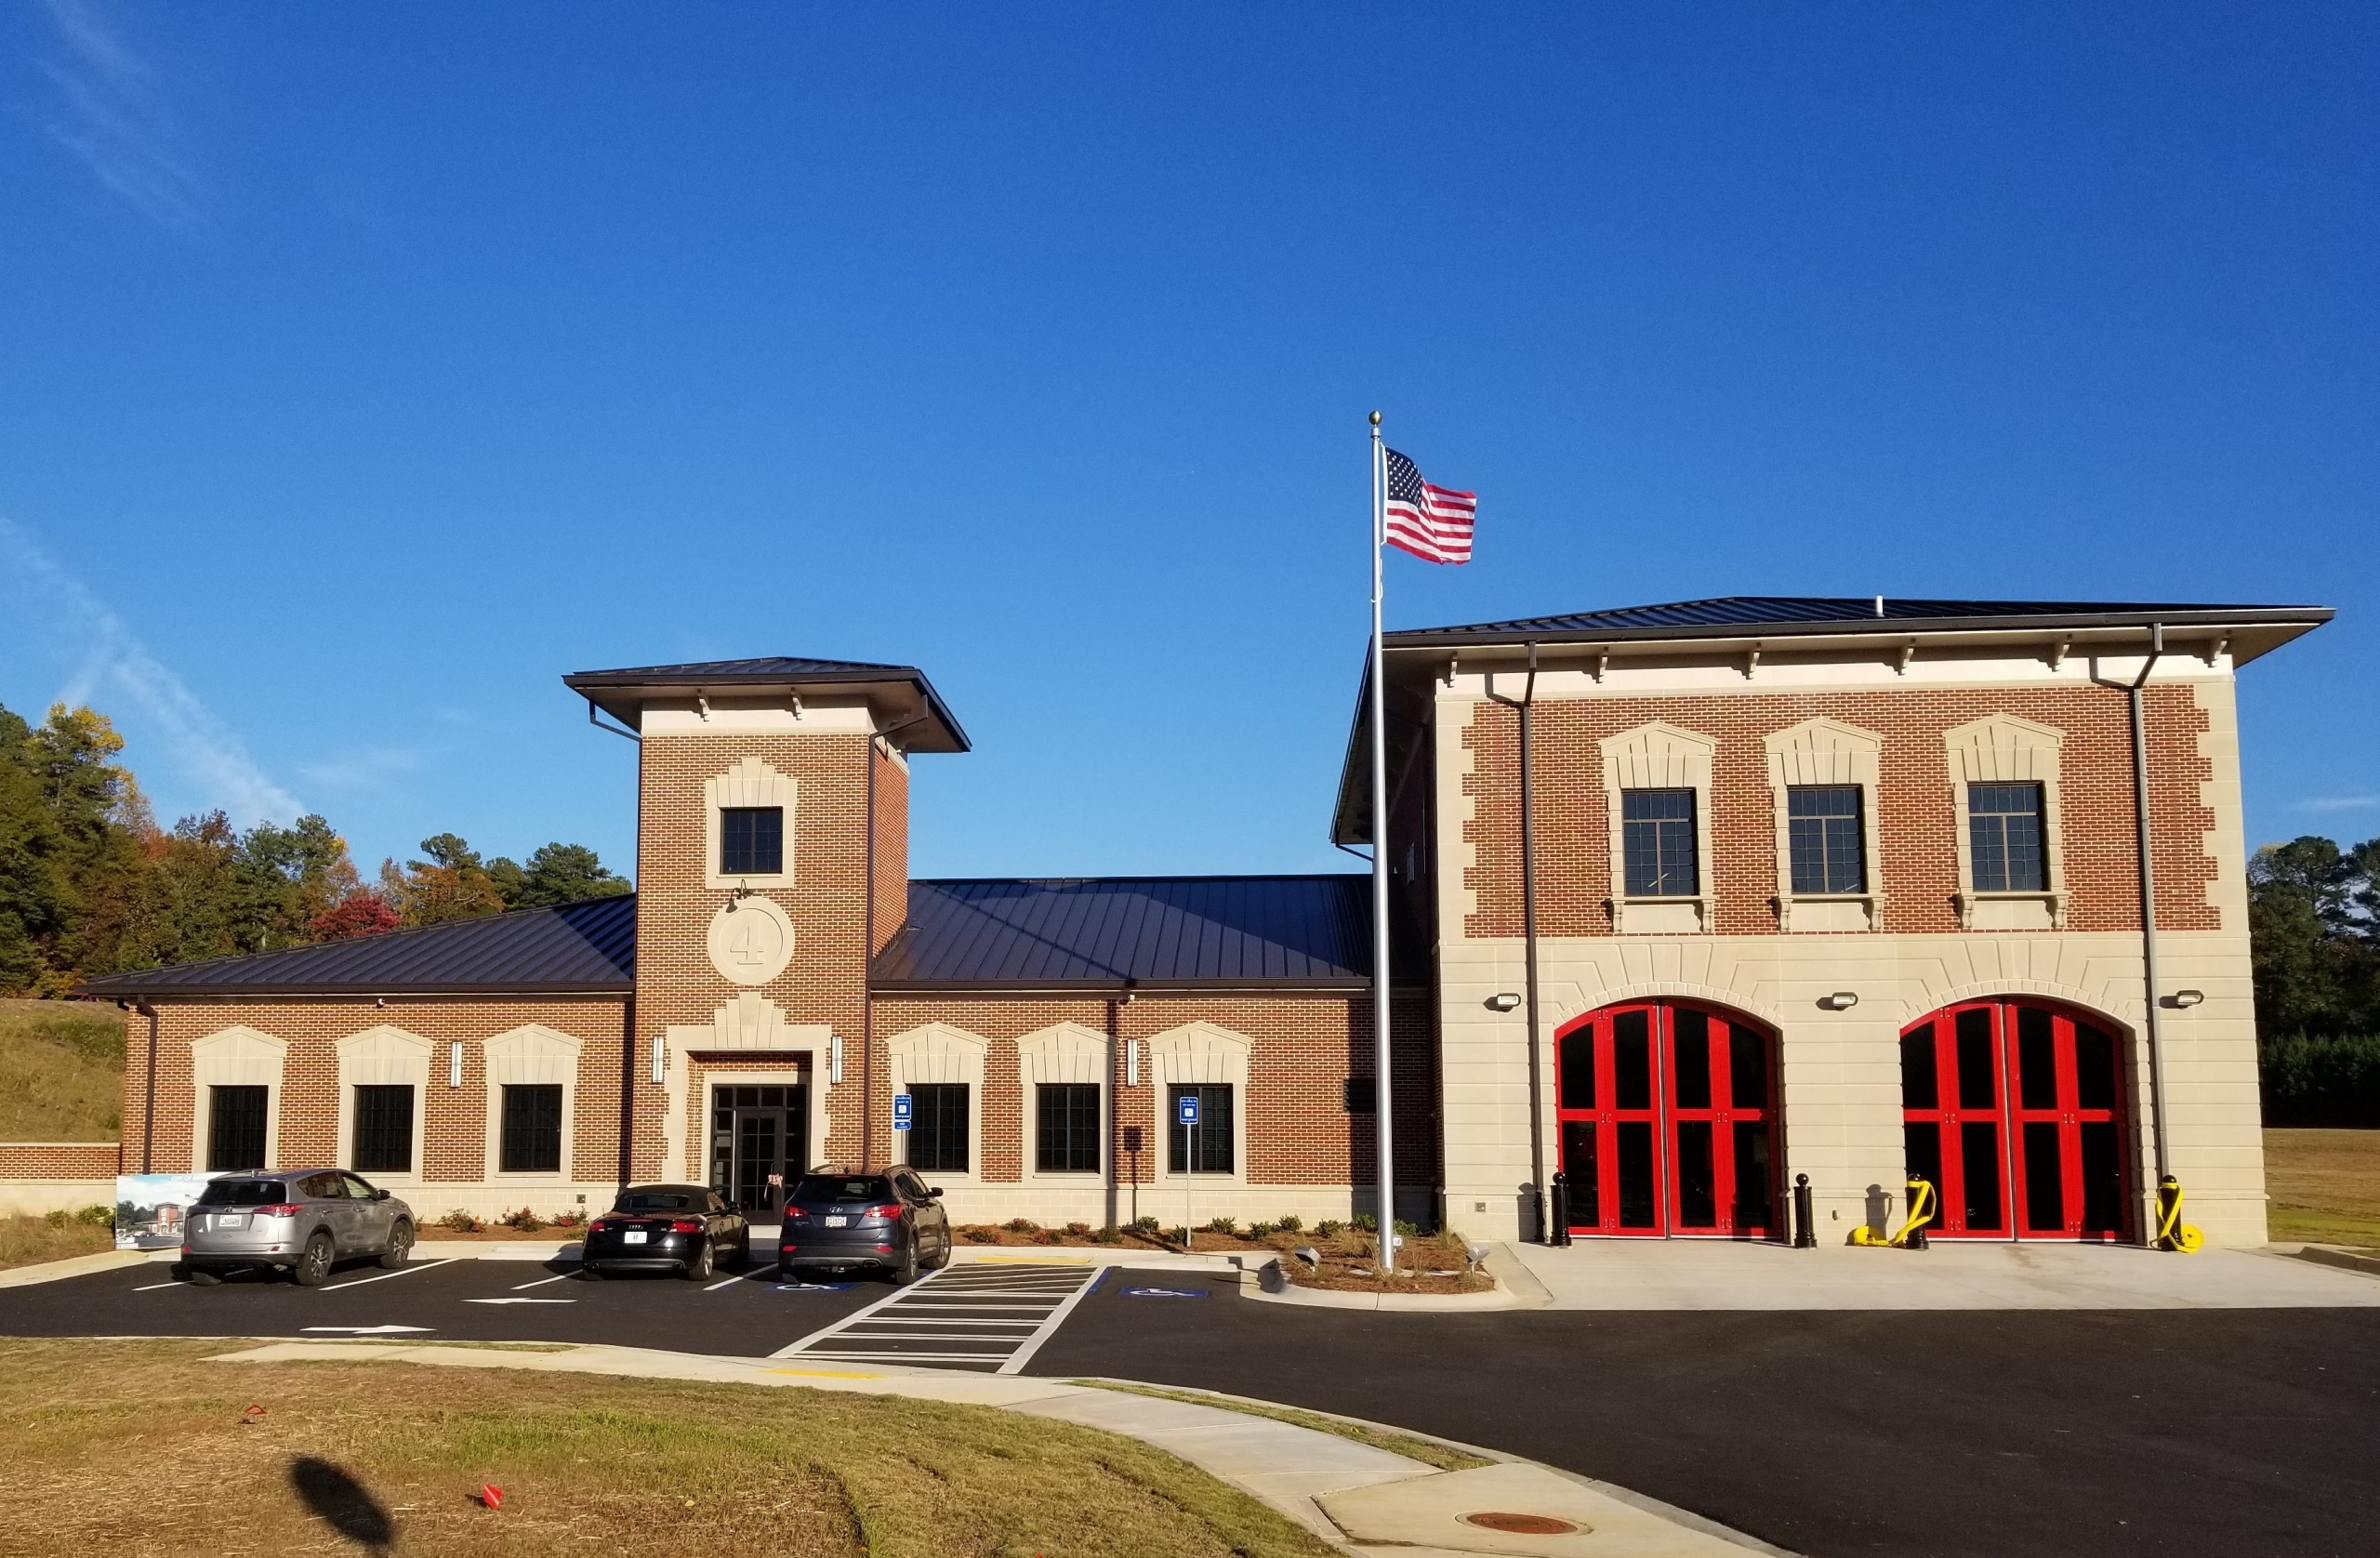 Newnan Fire Station No. 4